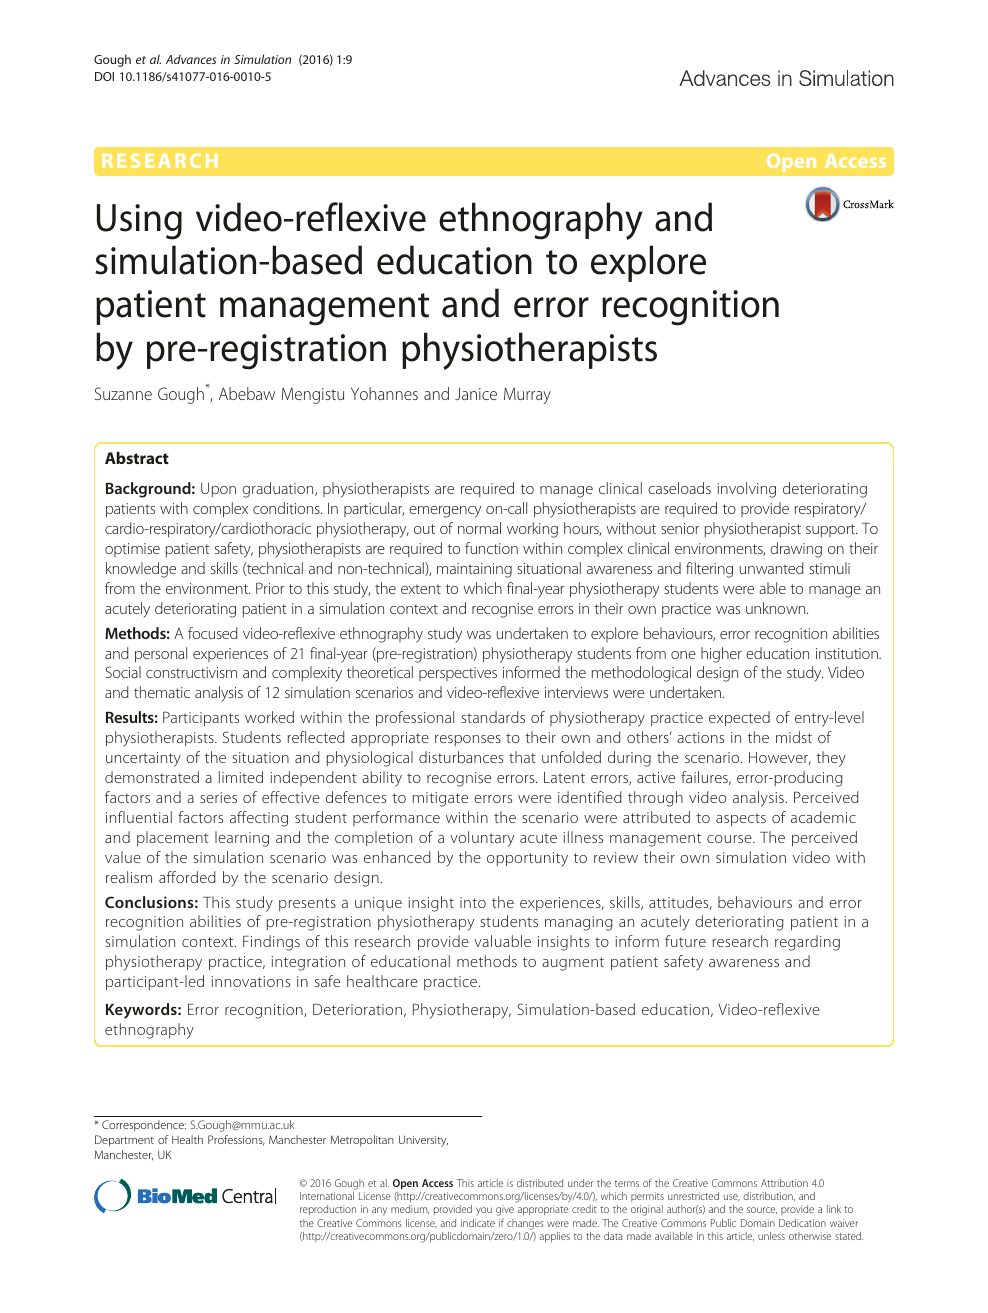 Using video-reflexive ethnography and simulation-based